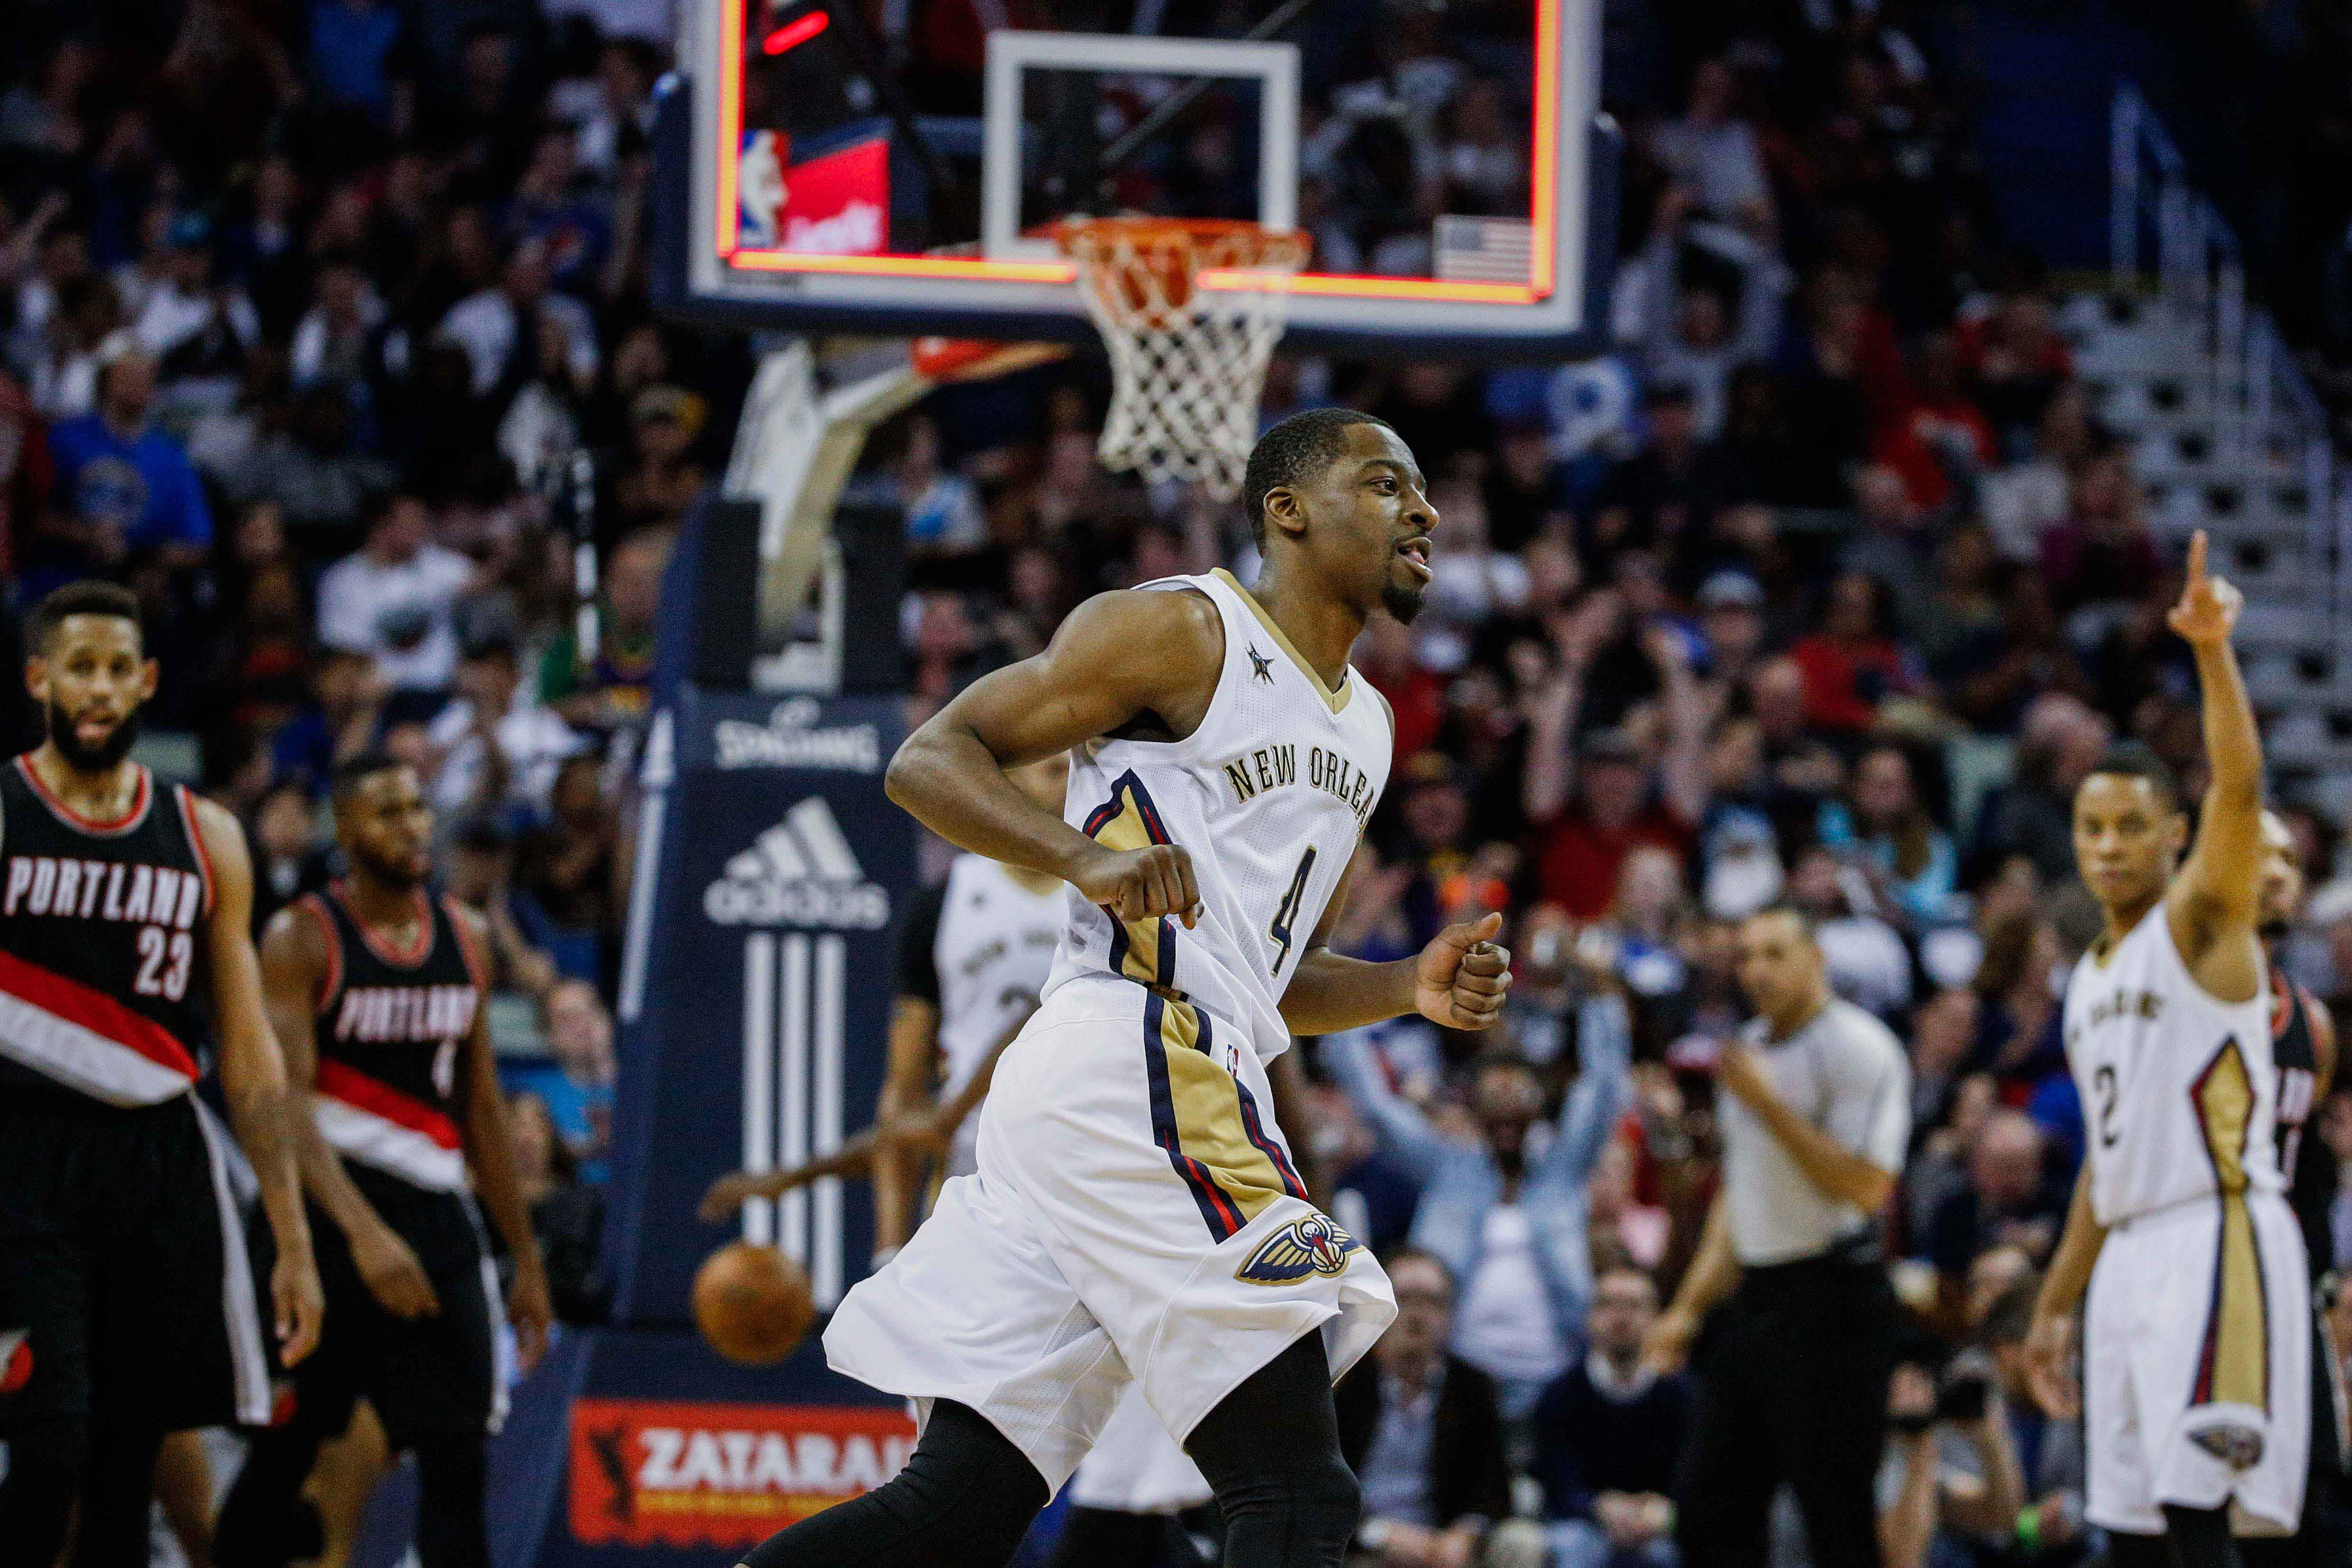 9943110-nba-portland-trail-blazers-at-new-orleans-pelicans-1